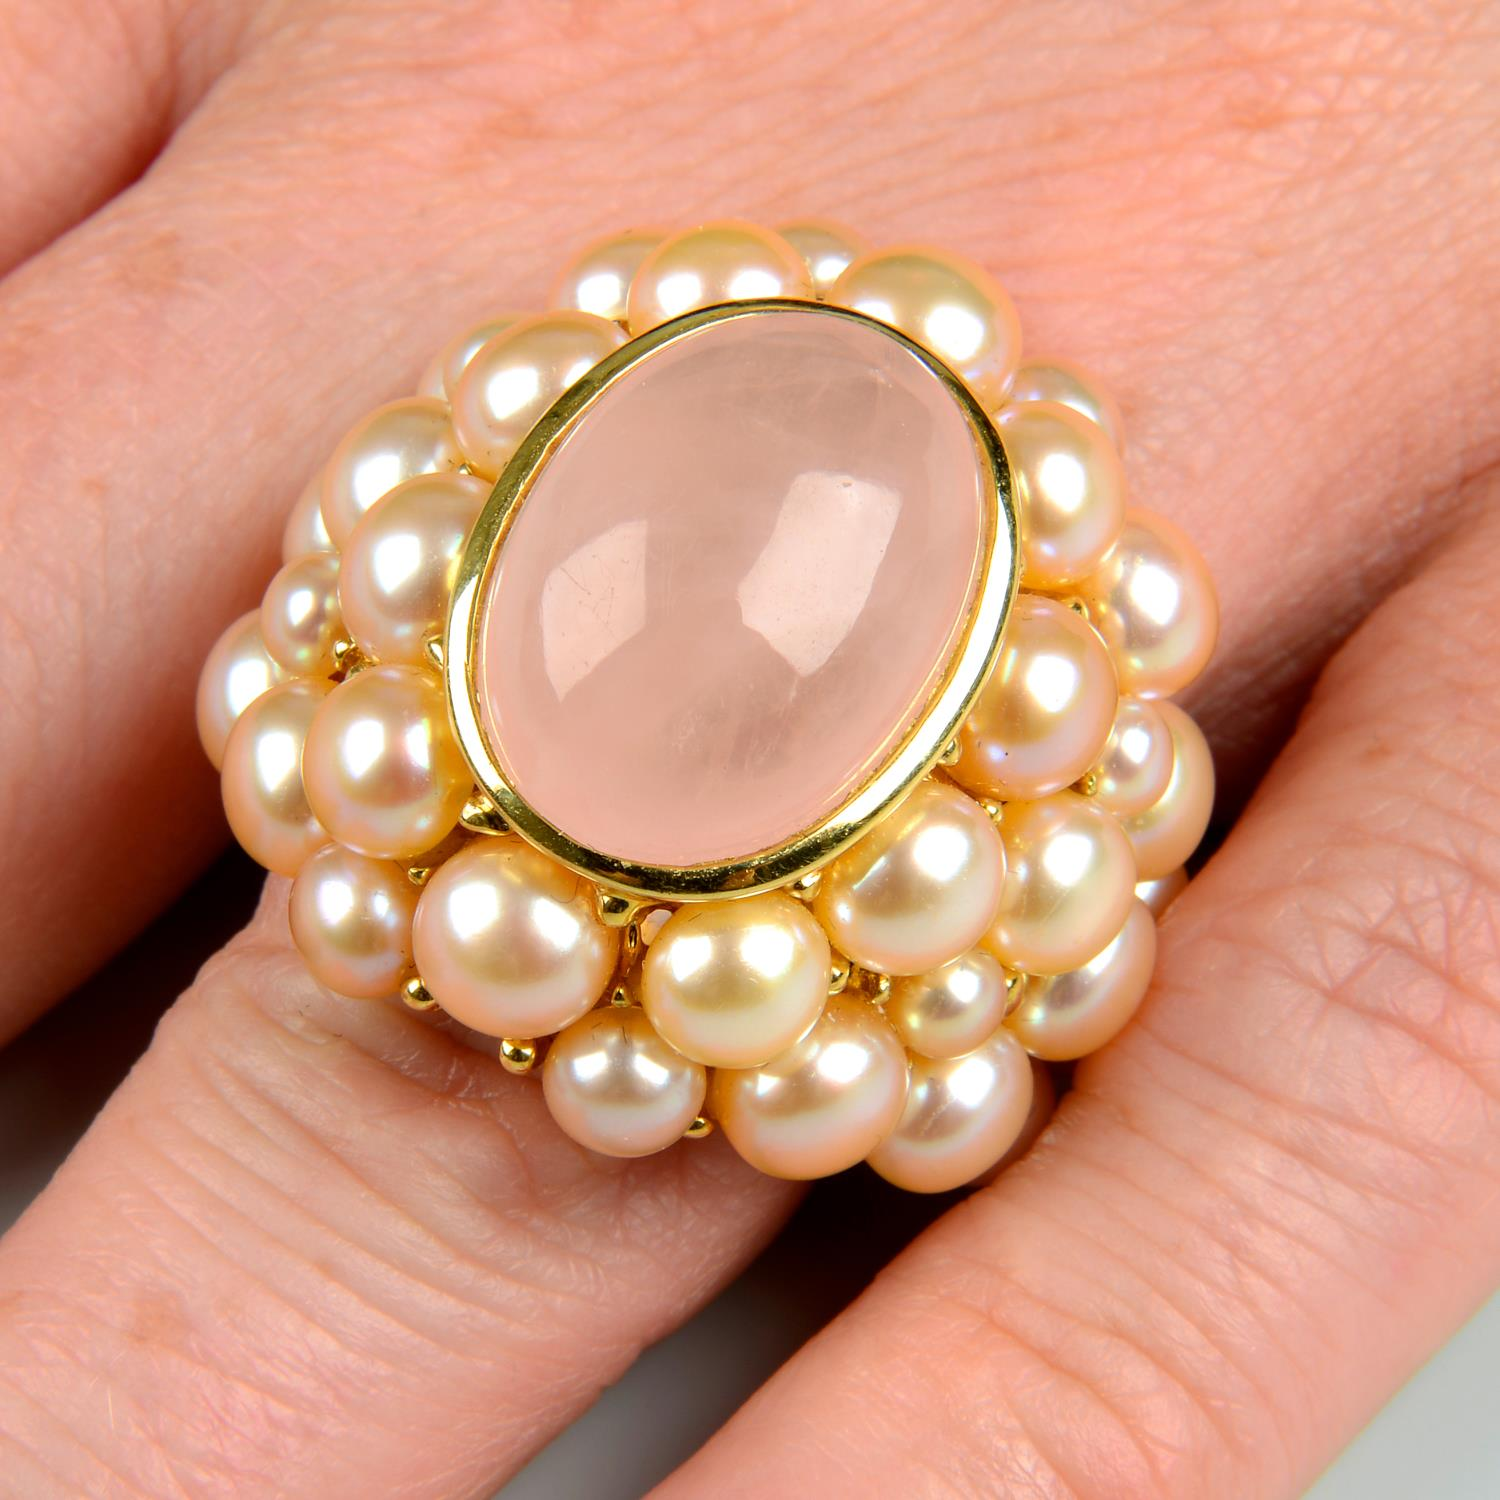 A rose quartz cabochon and pink cultured pearl cocktail ring, by Mimi.Signed Mimi.Stamped 750.